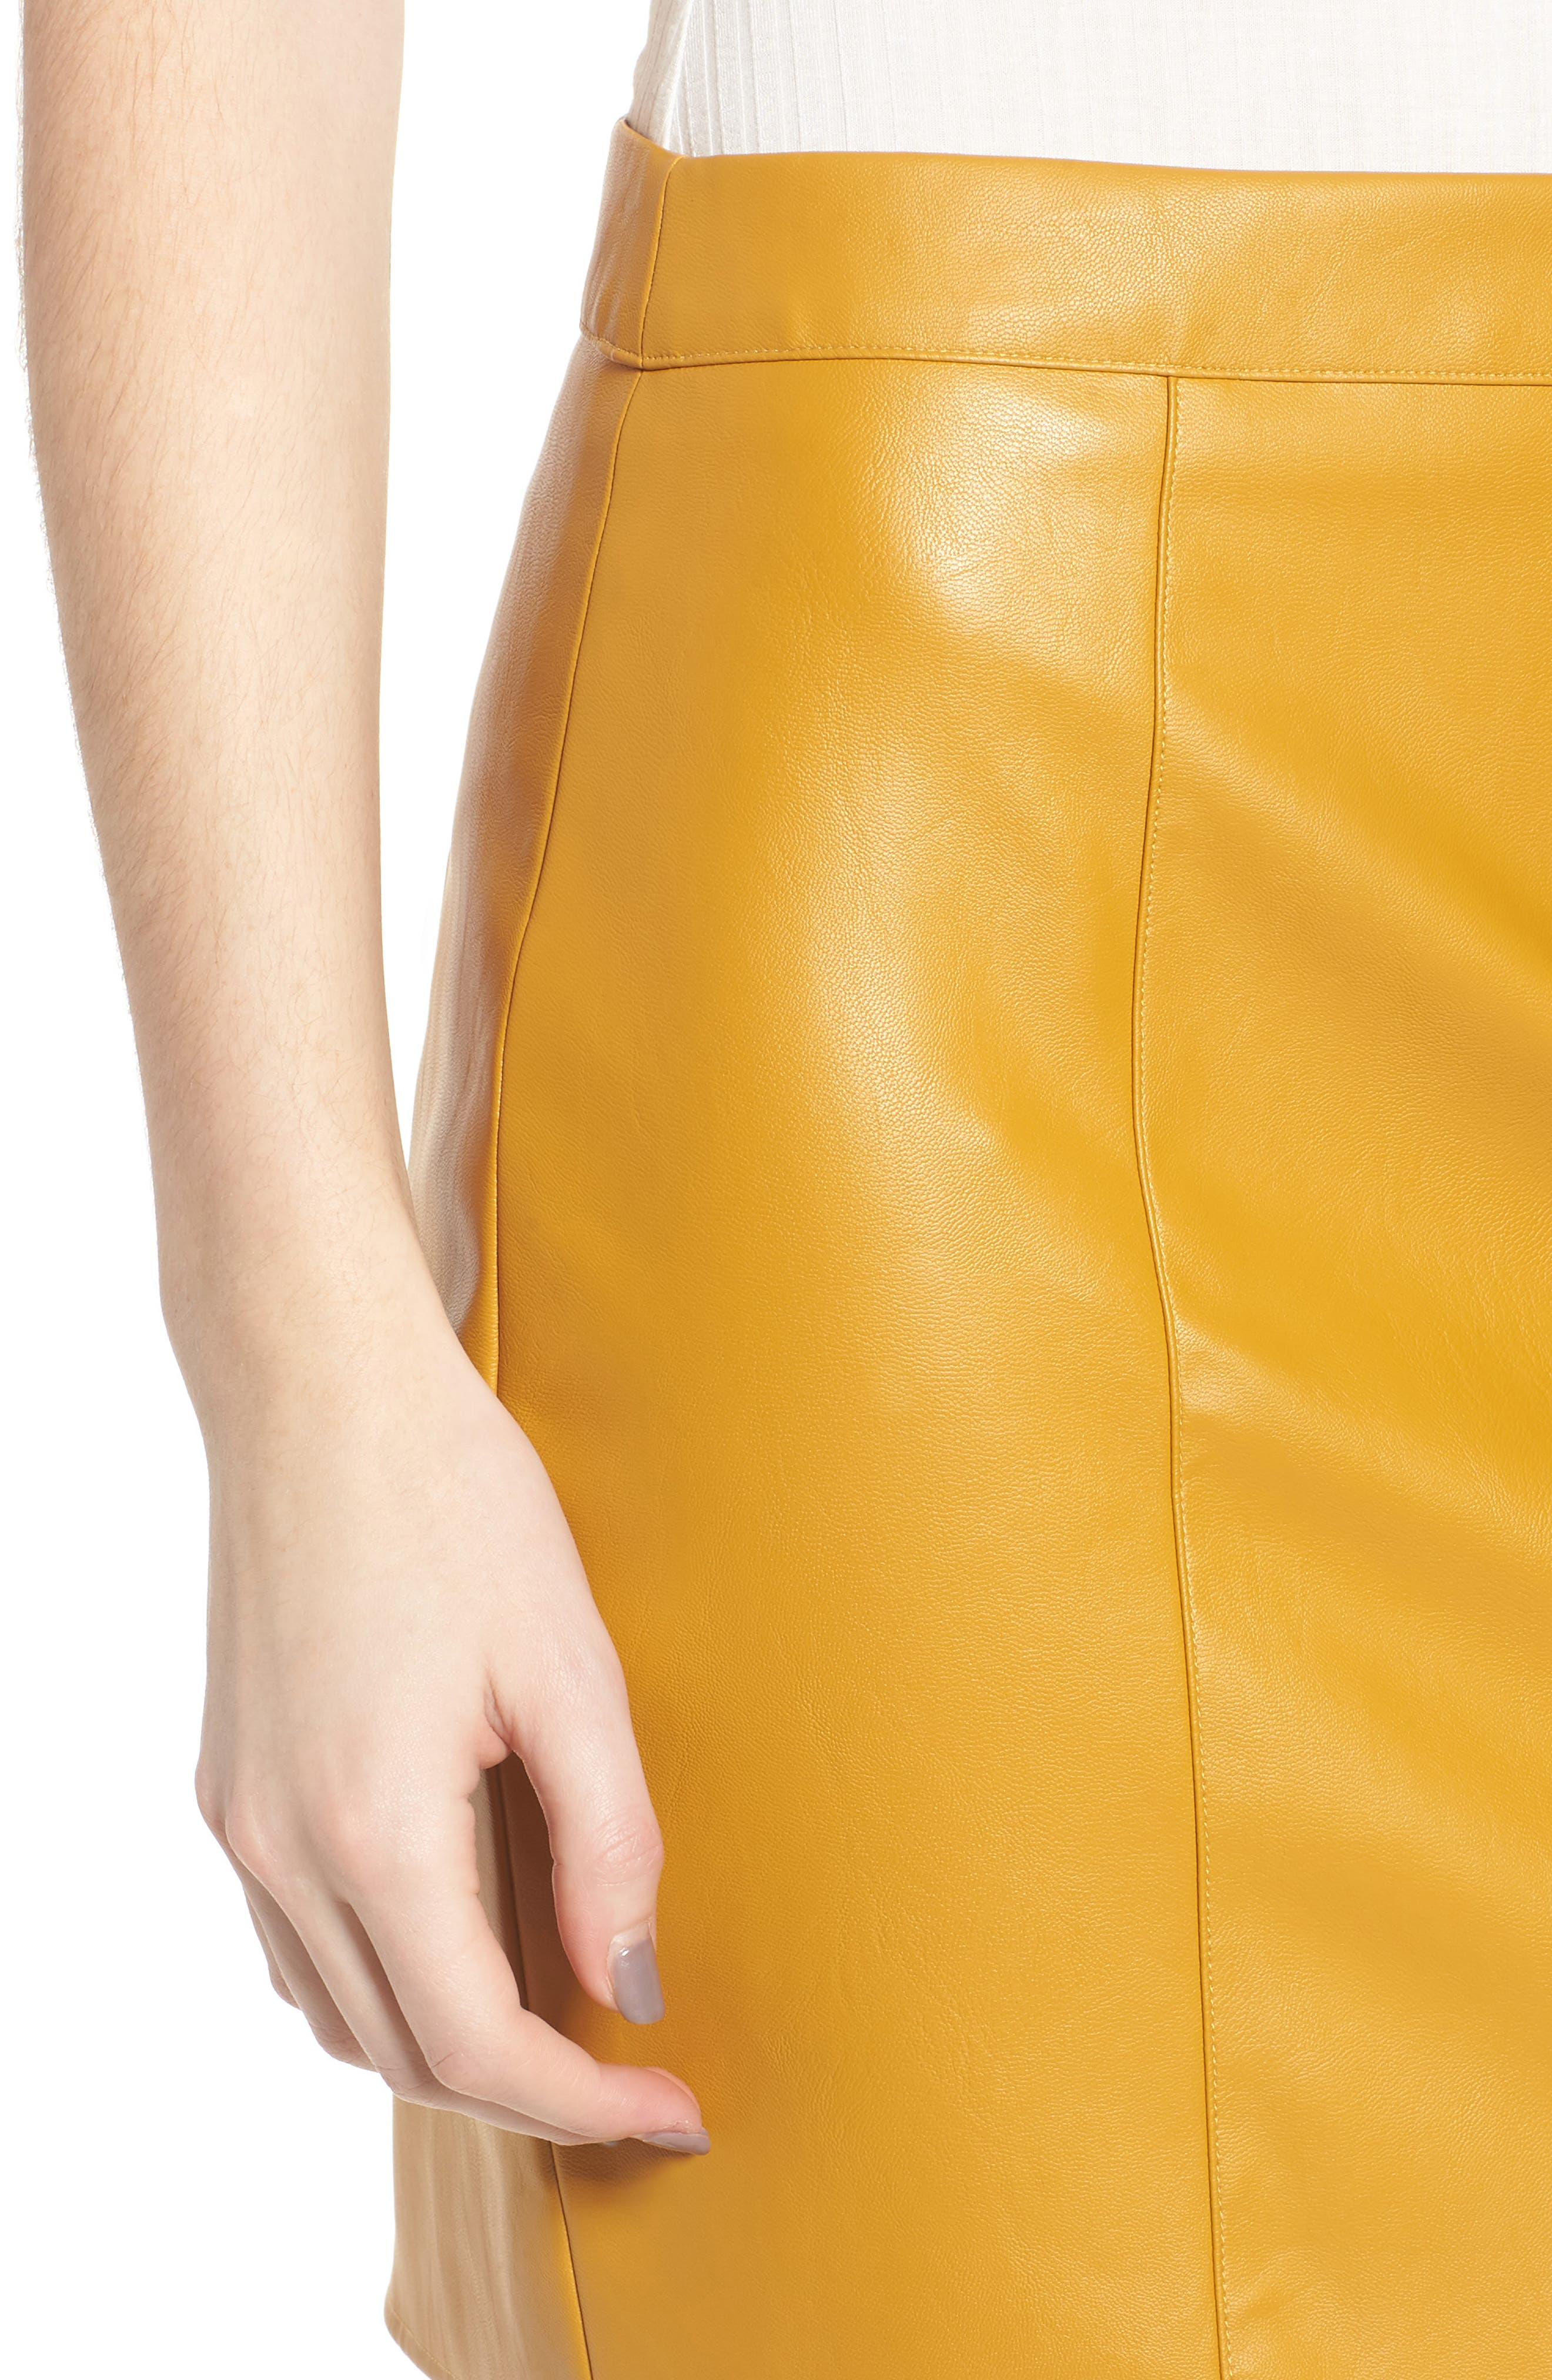 Bishop + Young Faux Leather Miniskirt,                             Alternate thumbnail 4, color,                             MUSTARD